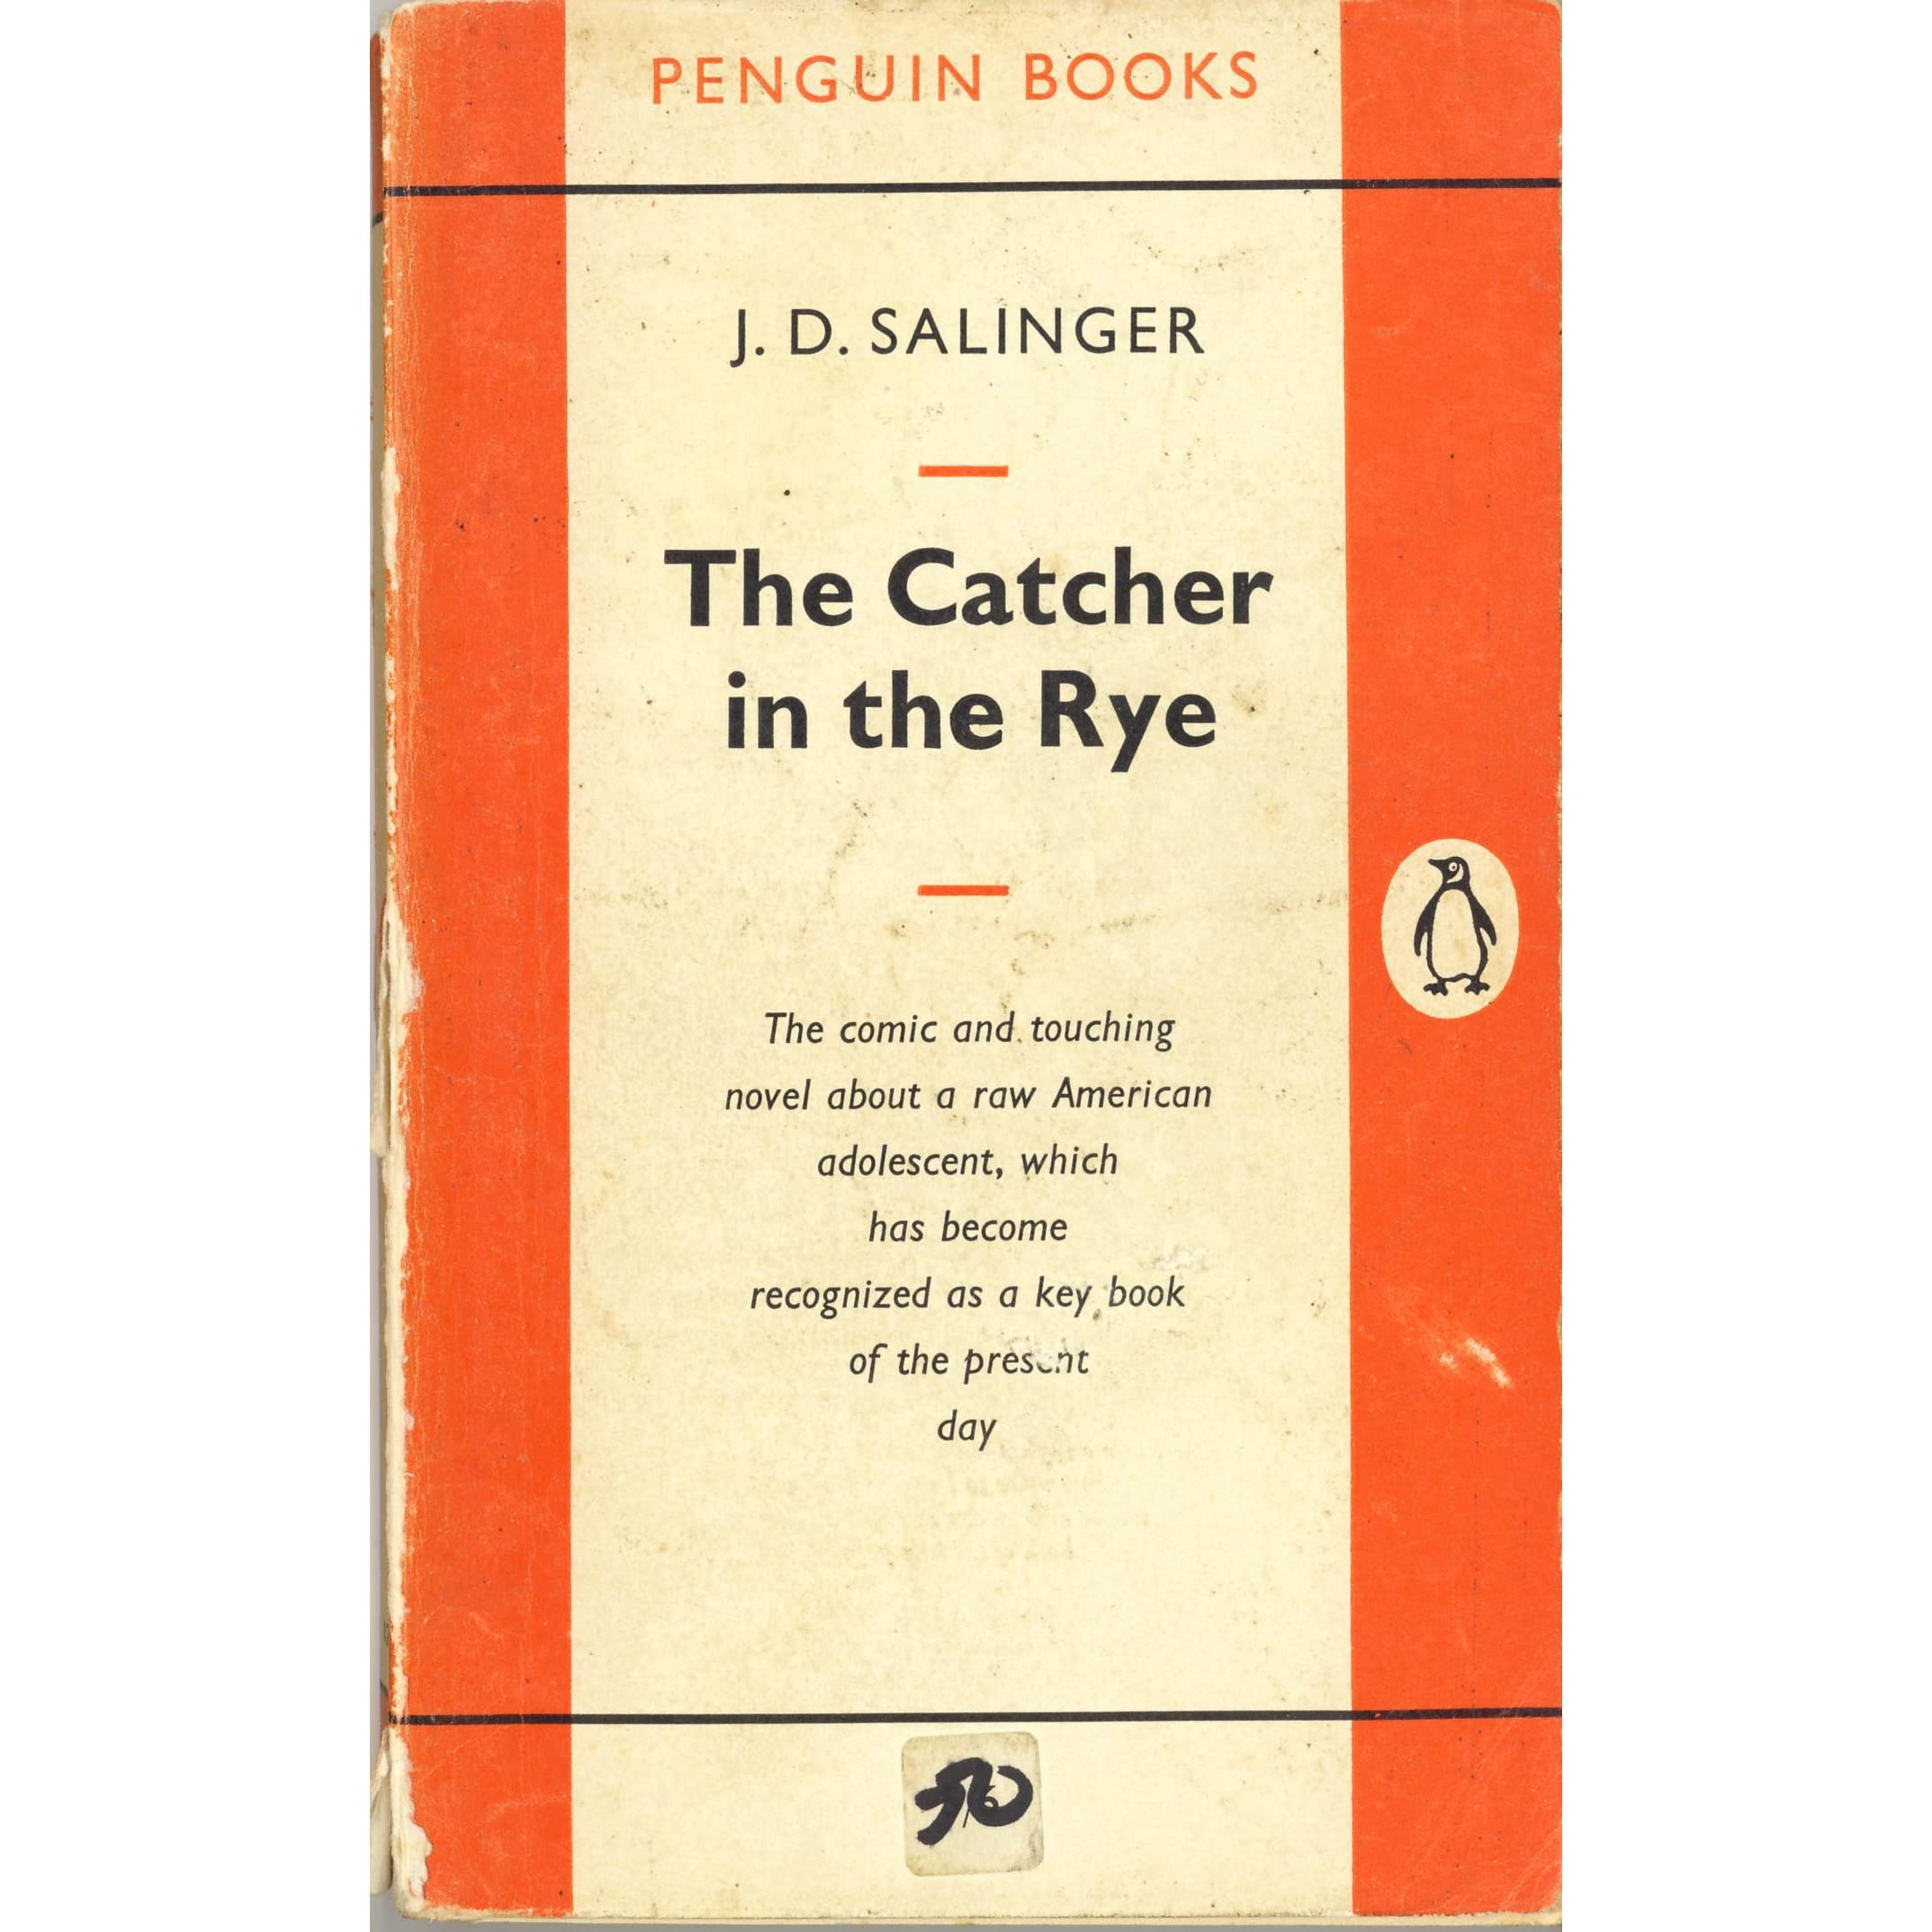 a review of j d salingers the catcher in the rye 'catcher in the rye' by jd salinger is one of the most banned books in the us according to time magazine there are few books in american literature as controversial as the catcher in the rye.